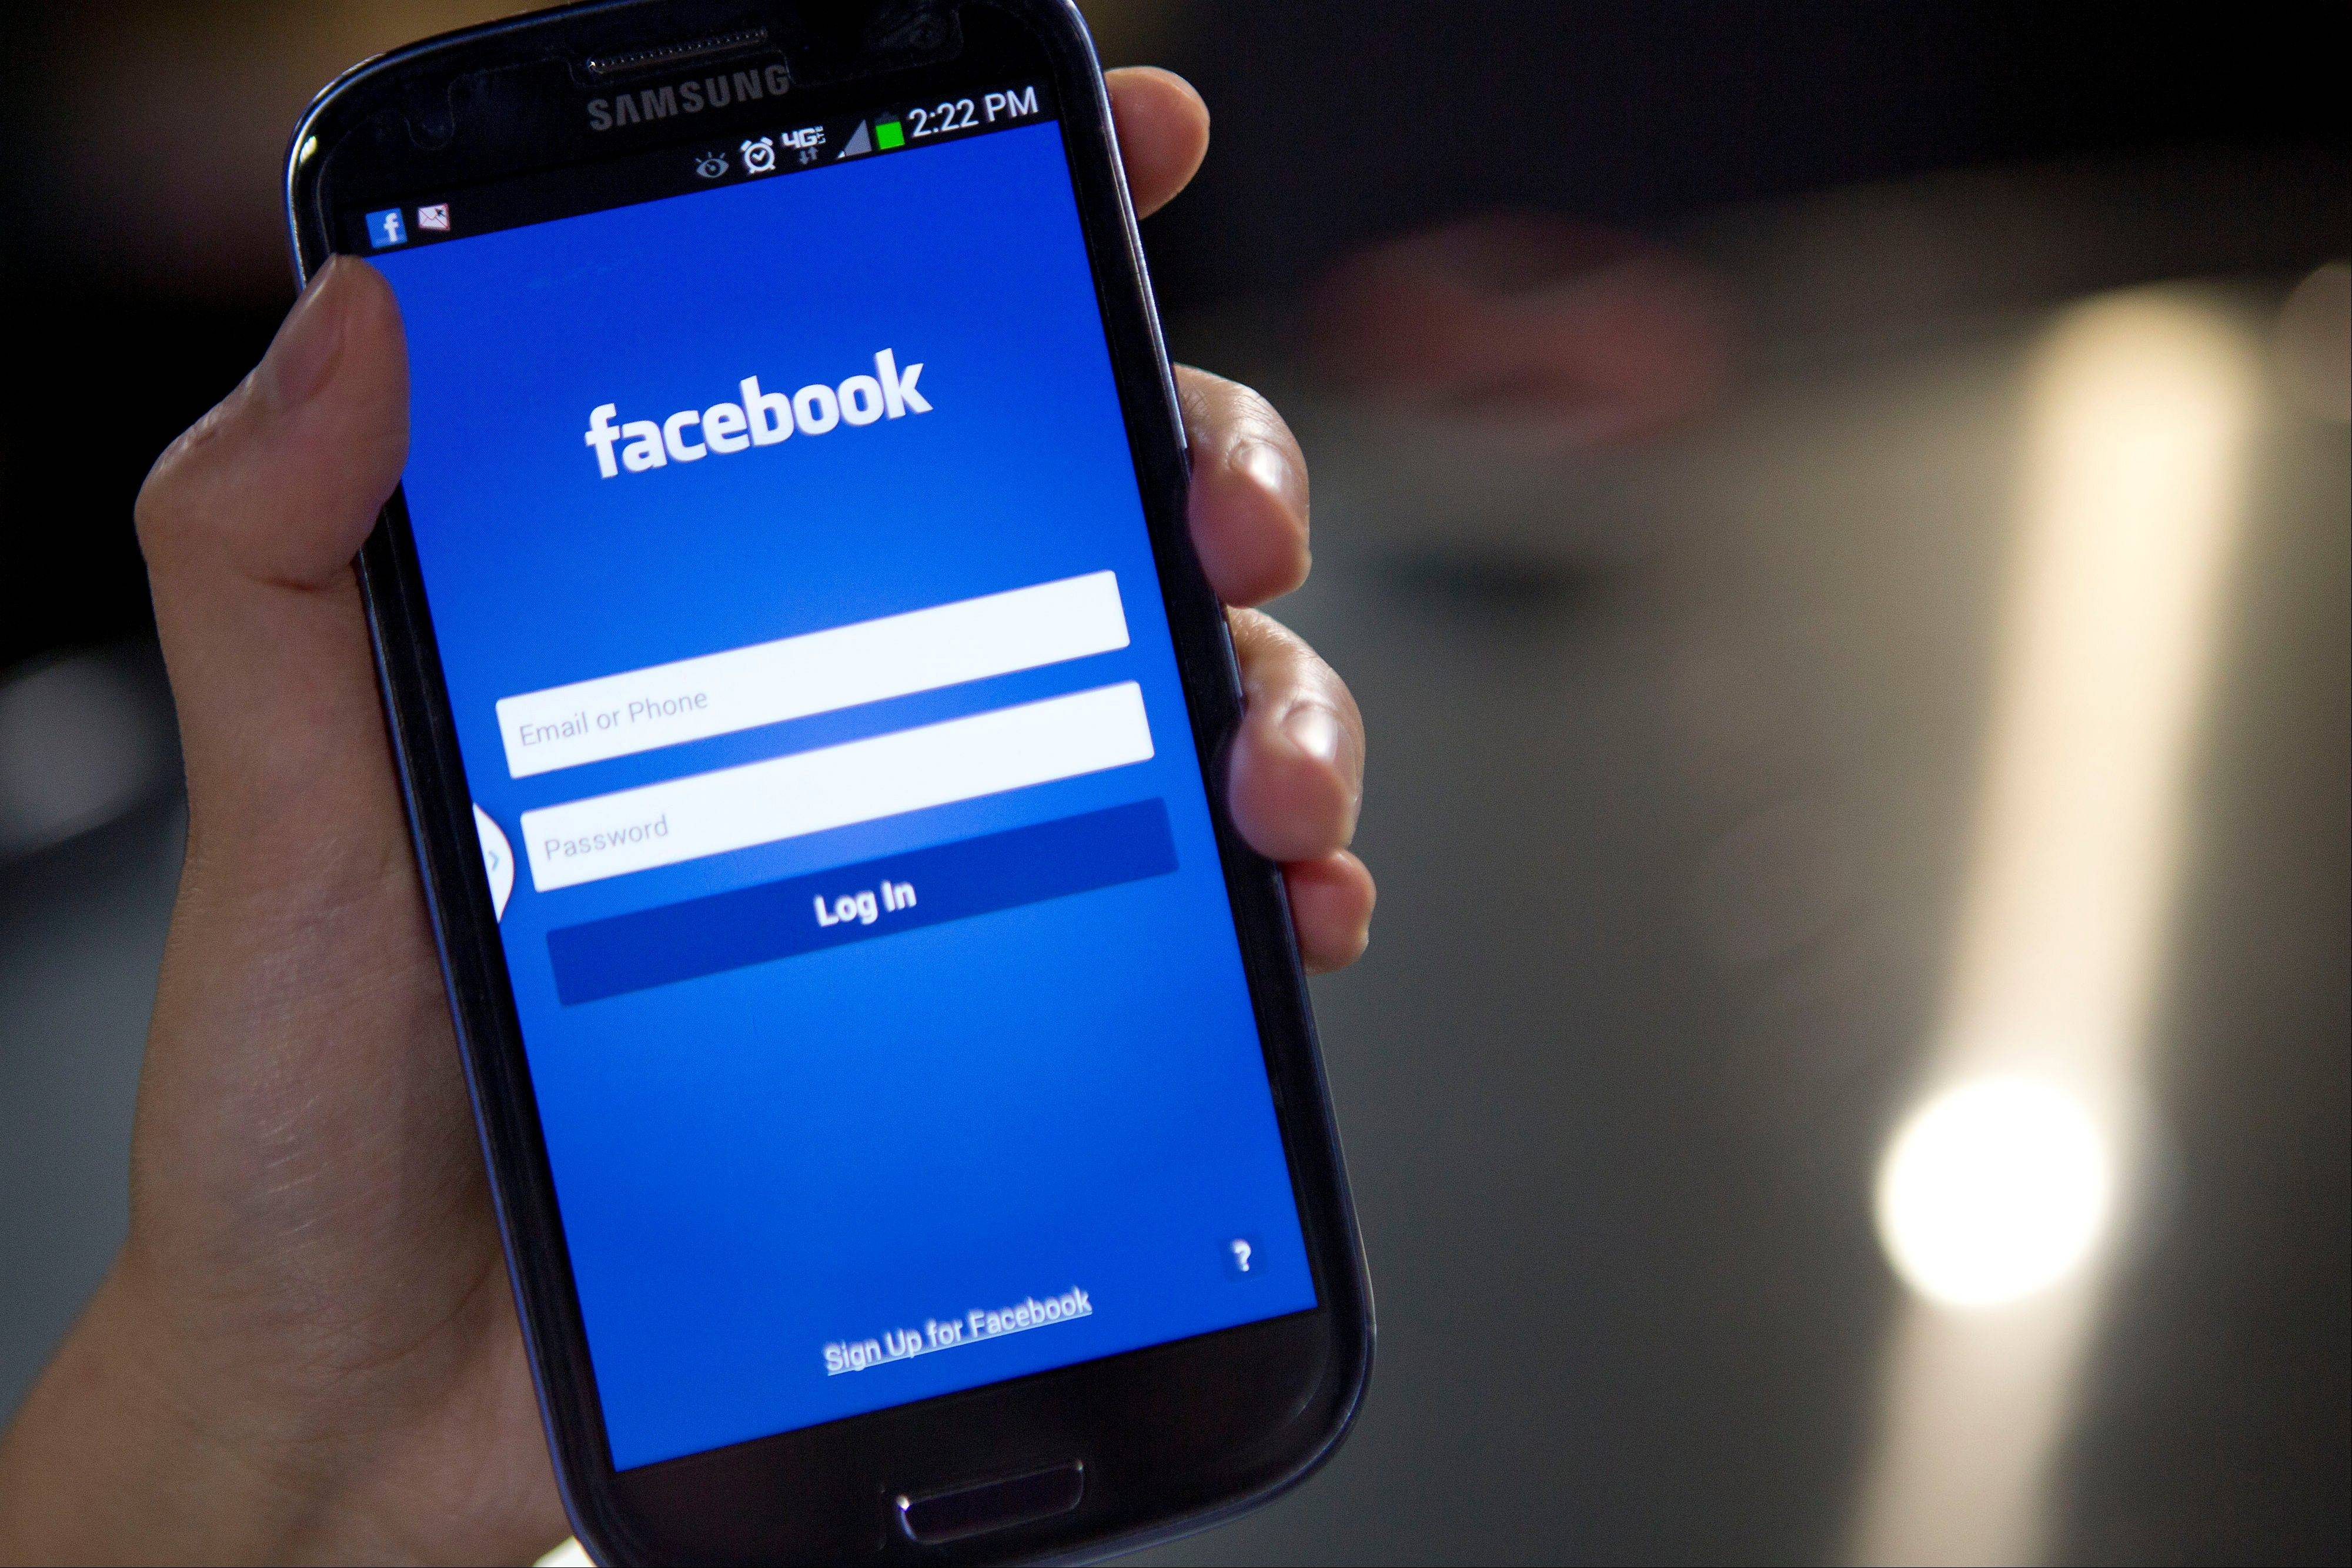 The Facebook Inc. application is displayed a Samsung Electronics Co. Galaxy S III smartphone in this arranged photograph in Washington, D.C., U.S., on Monday, Jan. 27, 2014. Facebook Inc. is expected to release earnings data on Jan. 29.